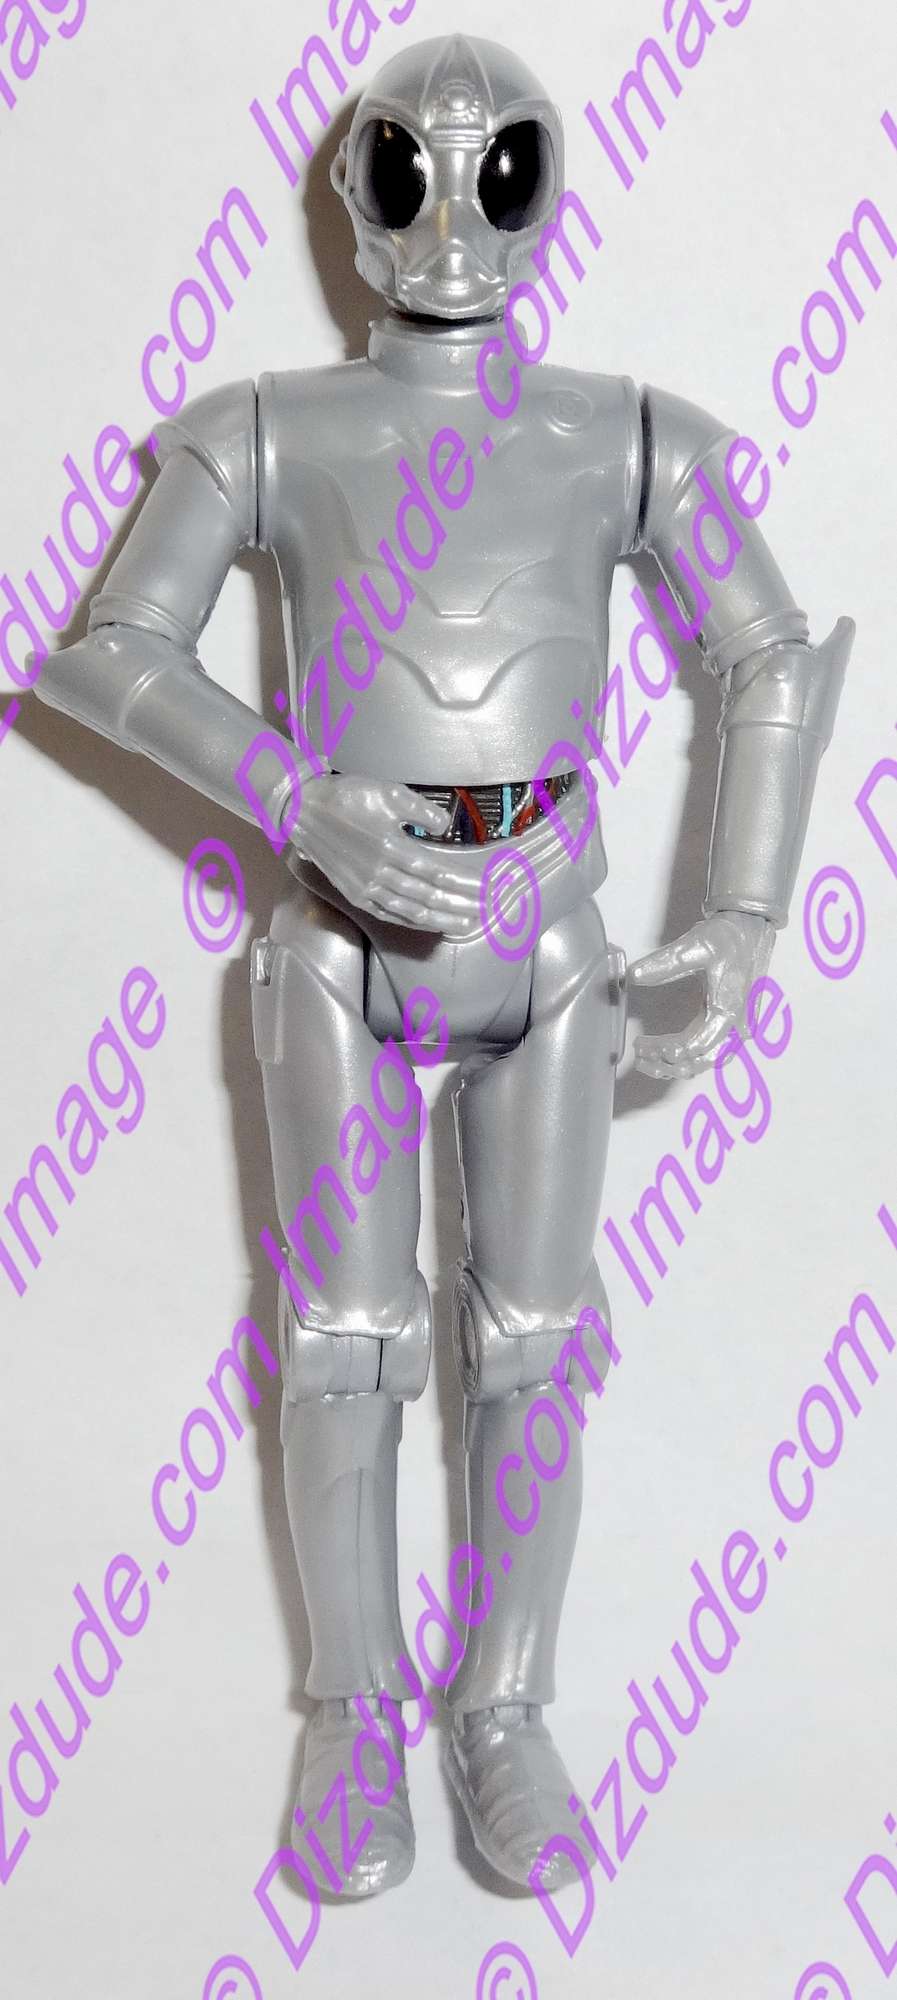 Silver RA Protocol Droid from Disney Star Wars Build-A-Droid Factory